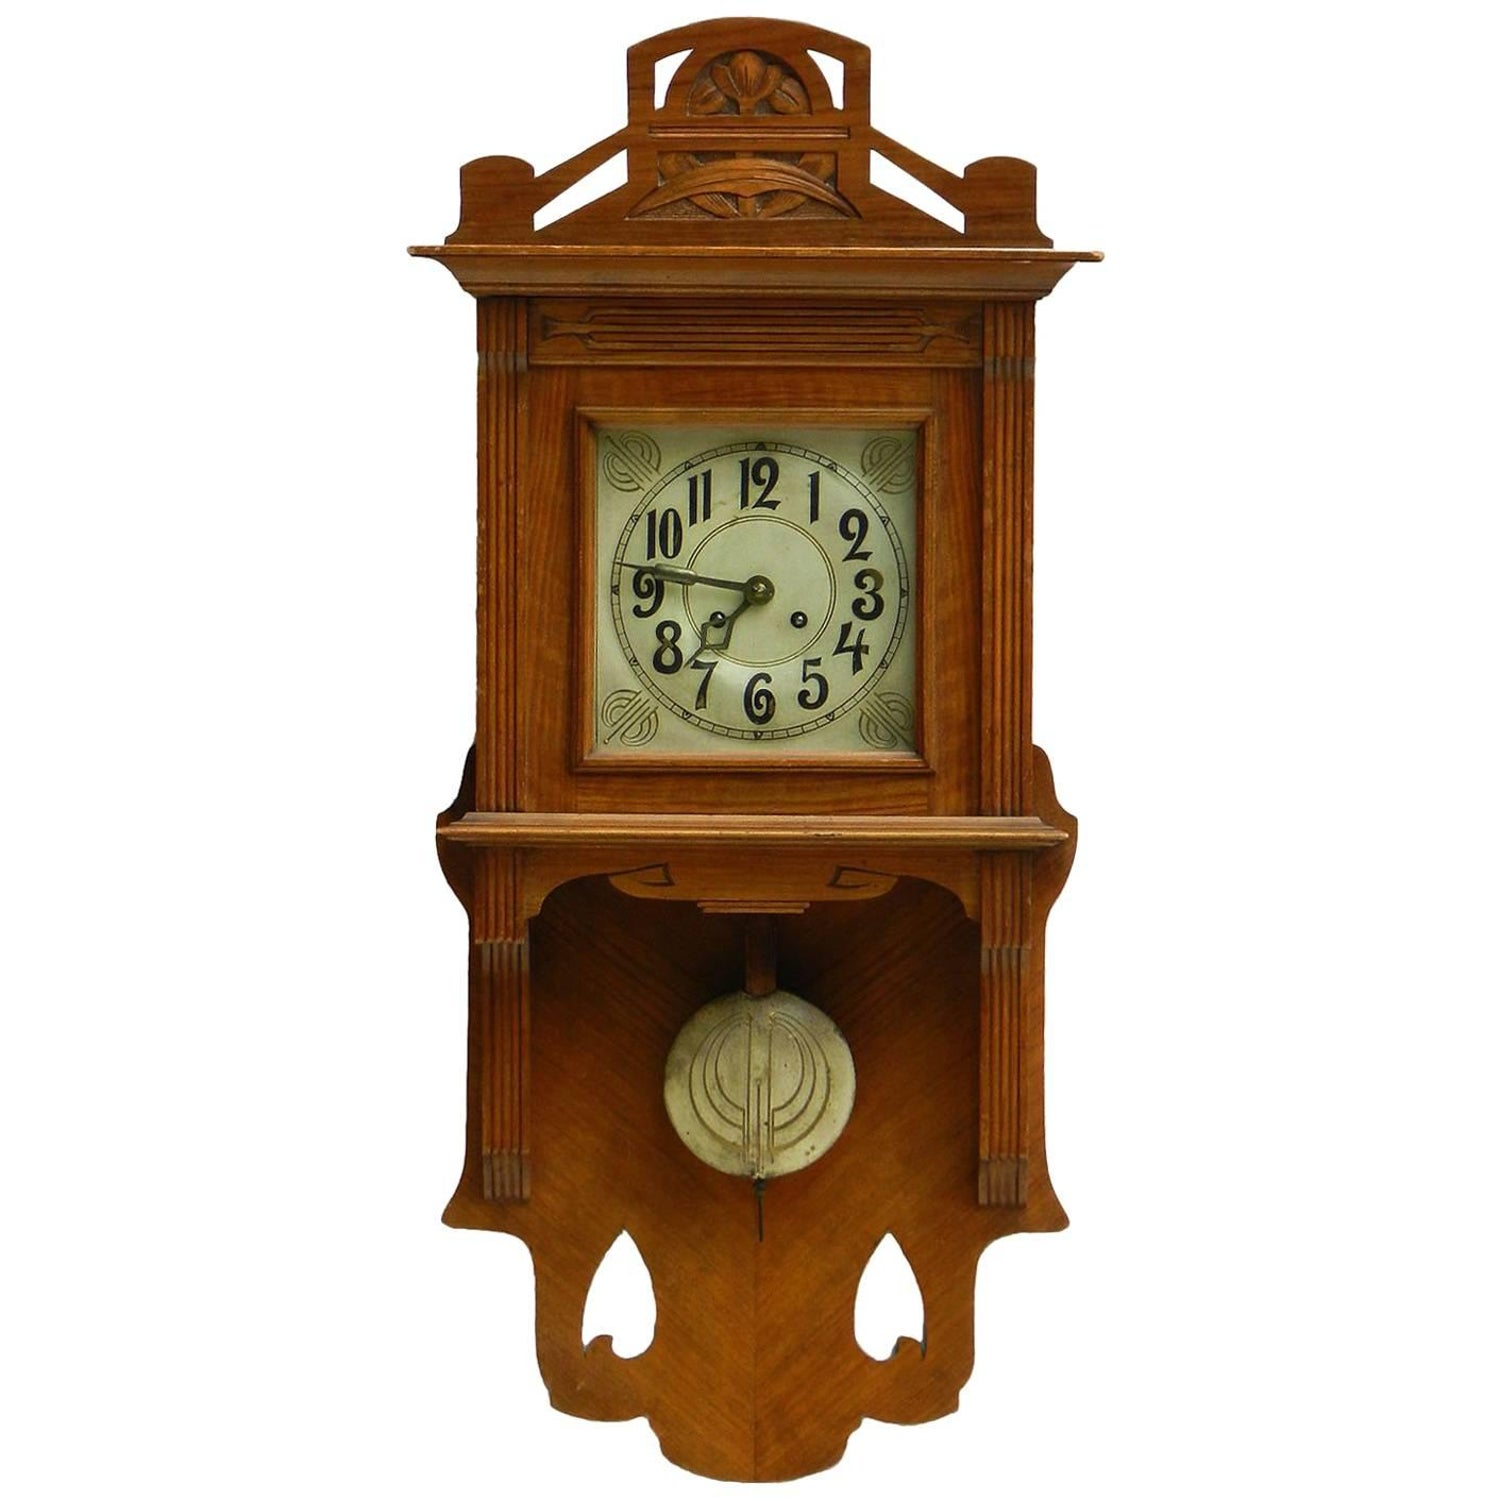 Arts and crafts wall clock german art nouveau circa 1900 1910 for arts and crafts wall clock german art nouveau circa 1900 1910 for sale at 1stdibs amipublicfo Images